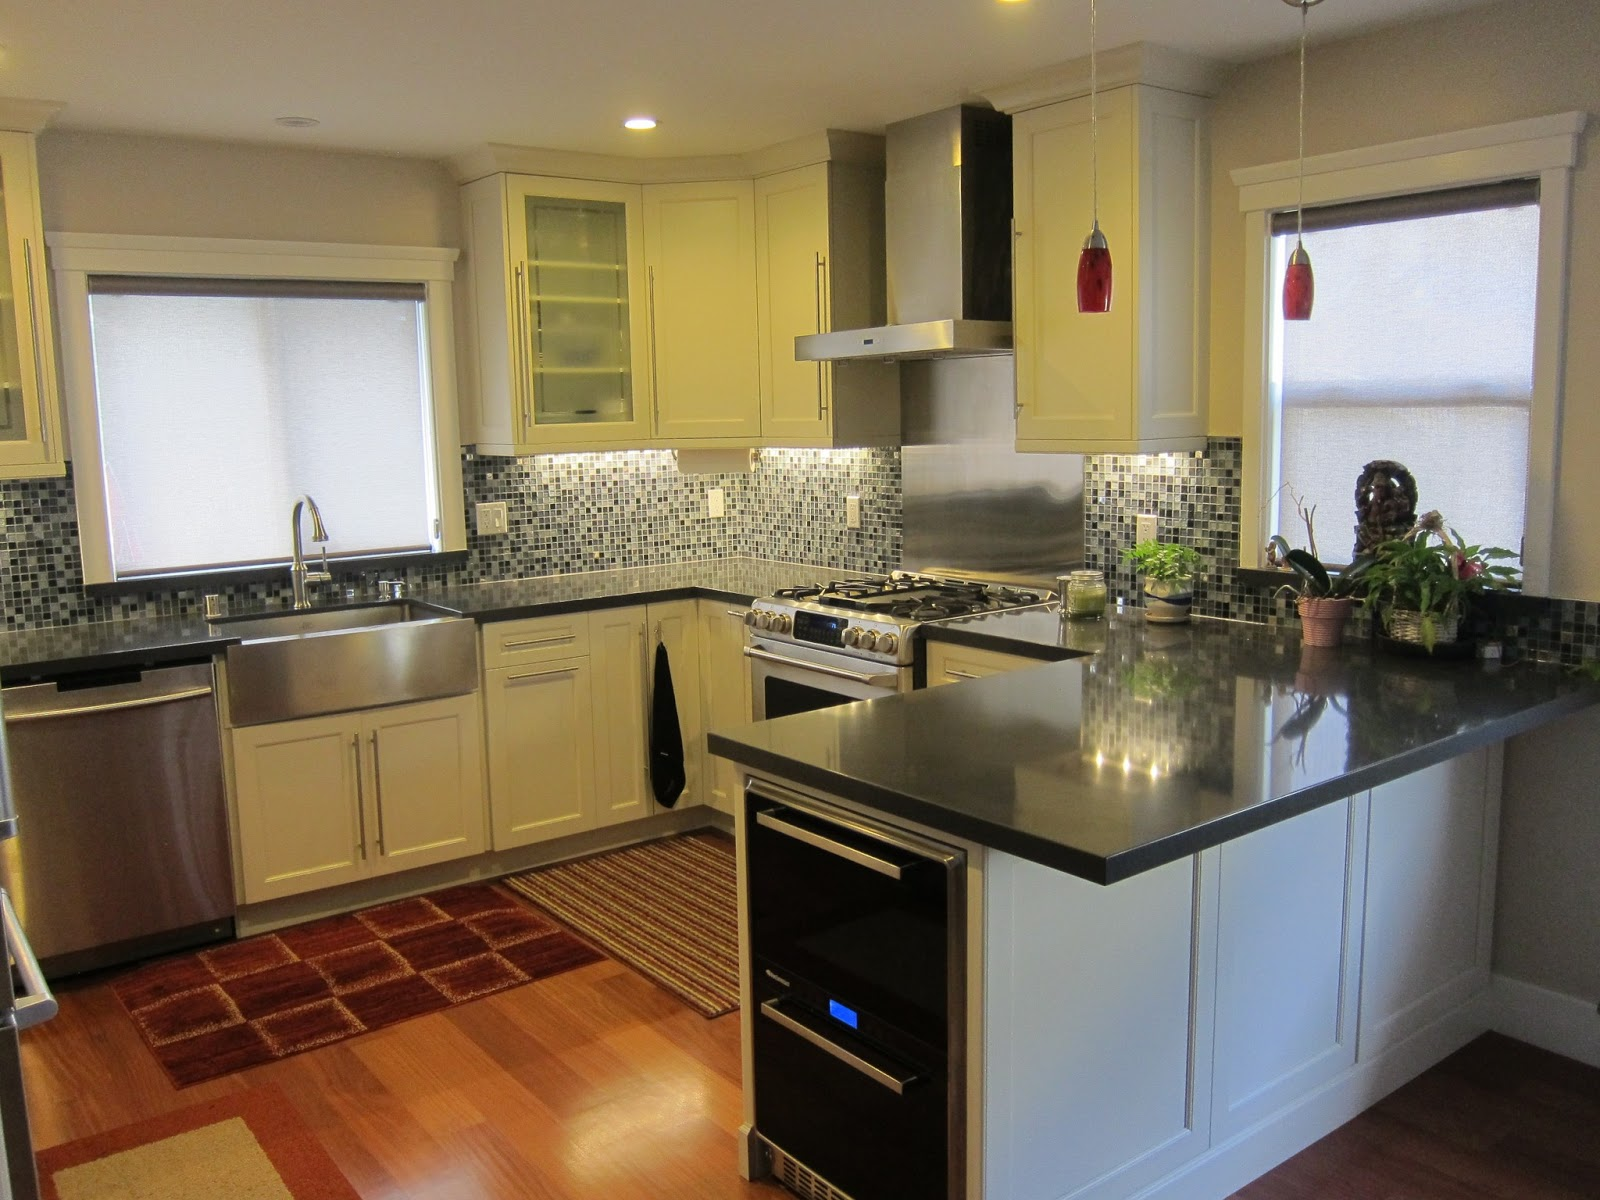 Picture of White Kitchen with Quartz Counters and Cabinets